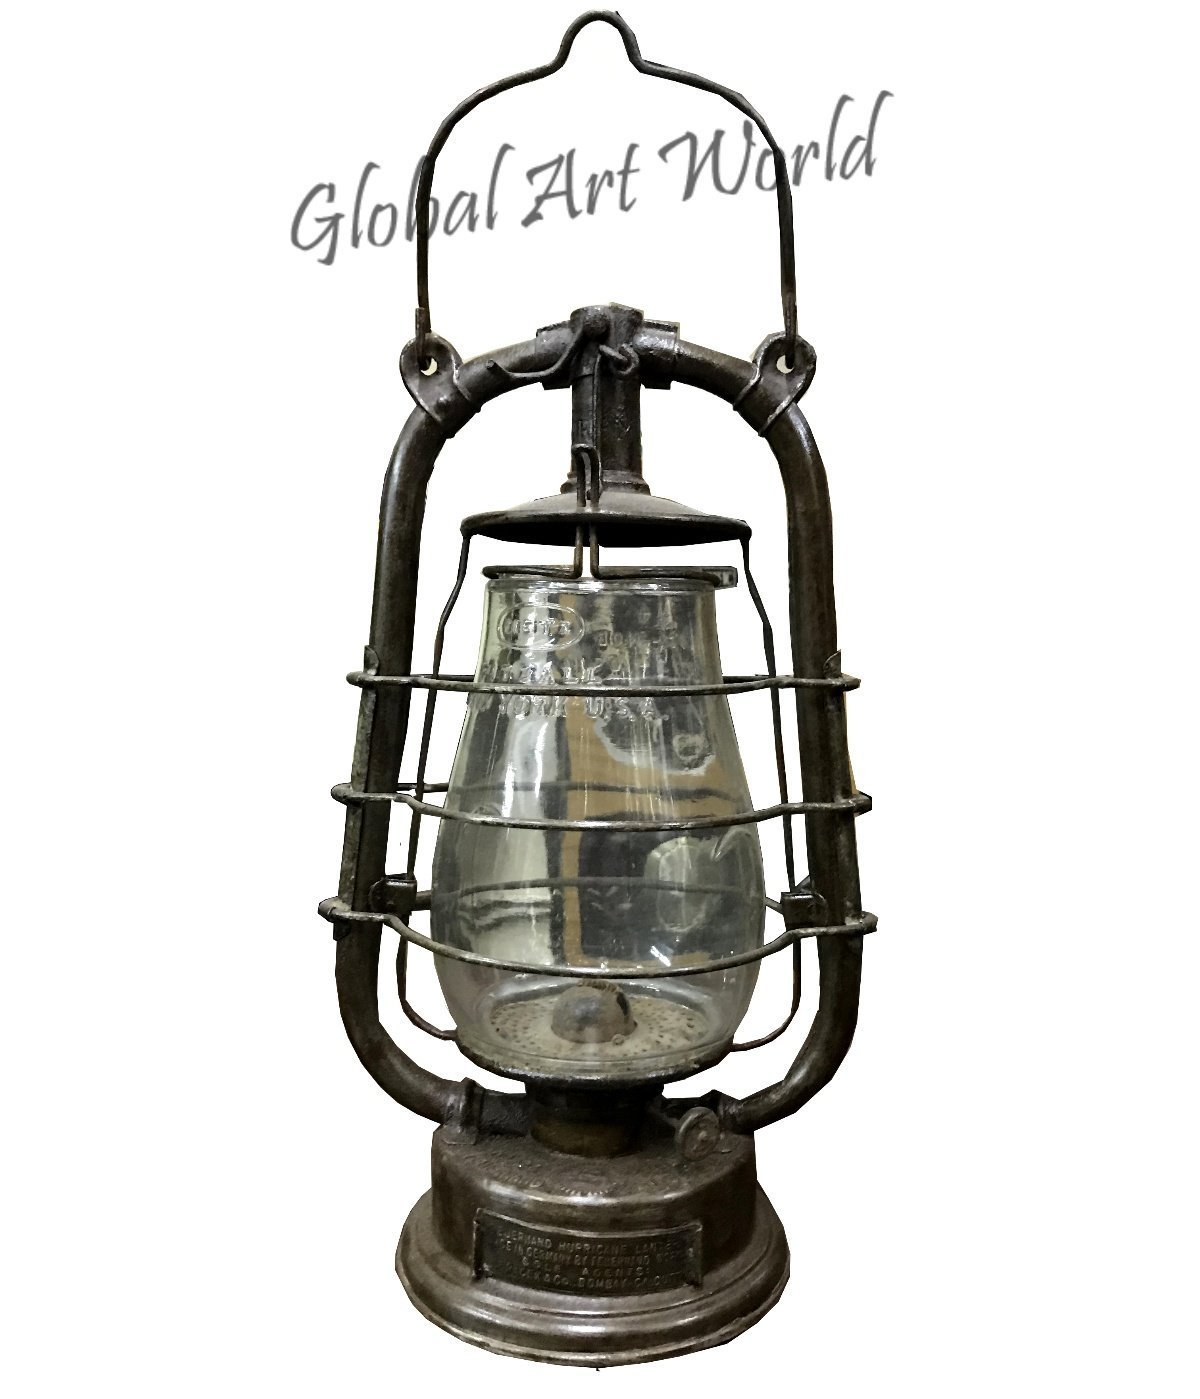 Global Art World Feuerhand Hurricane Vintage Lamps & Lantern Made In Germany In Antique Collectibles, Lamps, Lighting, Lamps And Non Electric Oil Lamps HB 0167